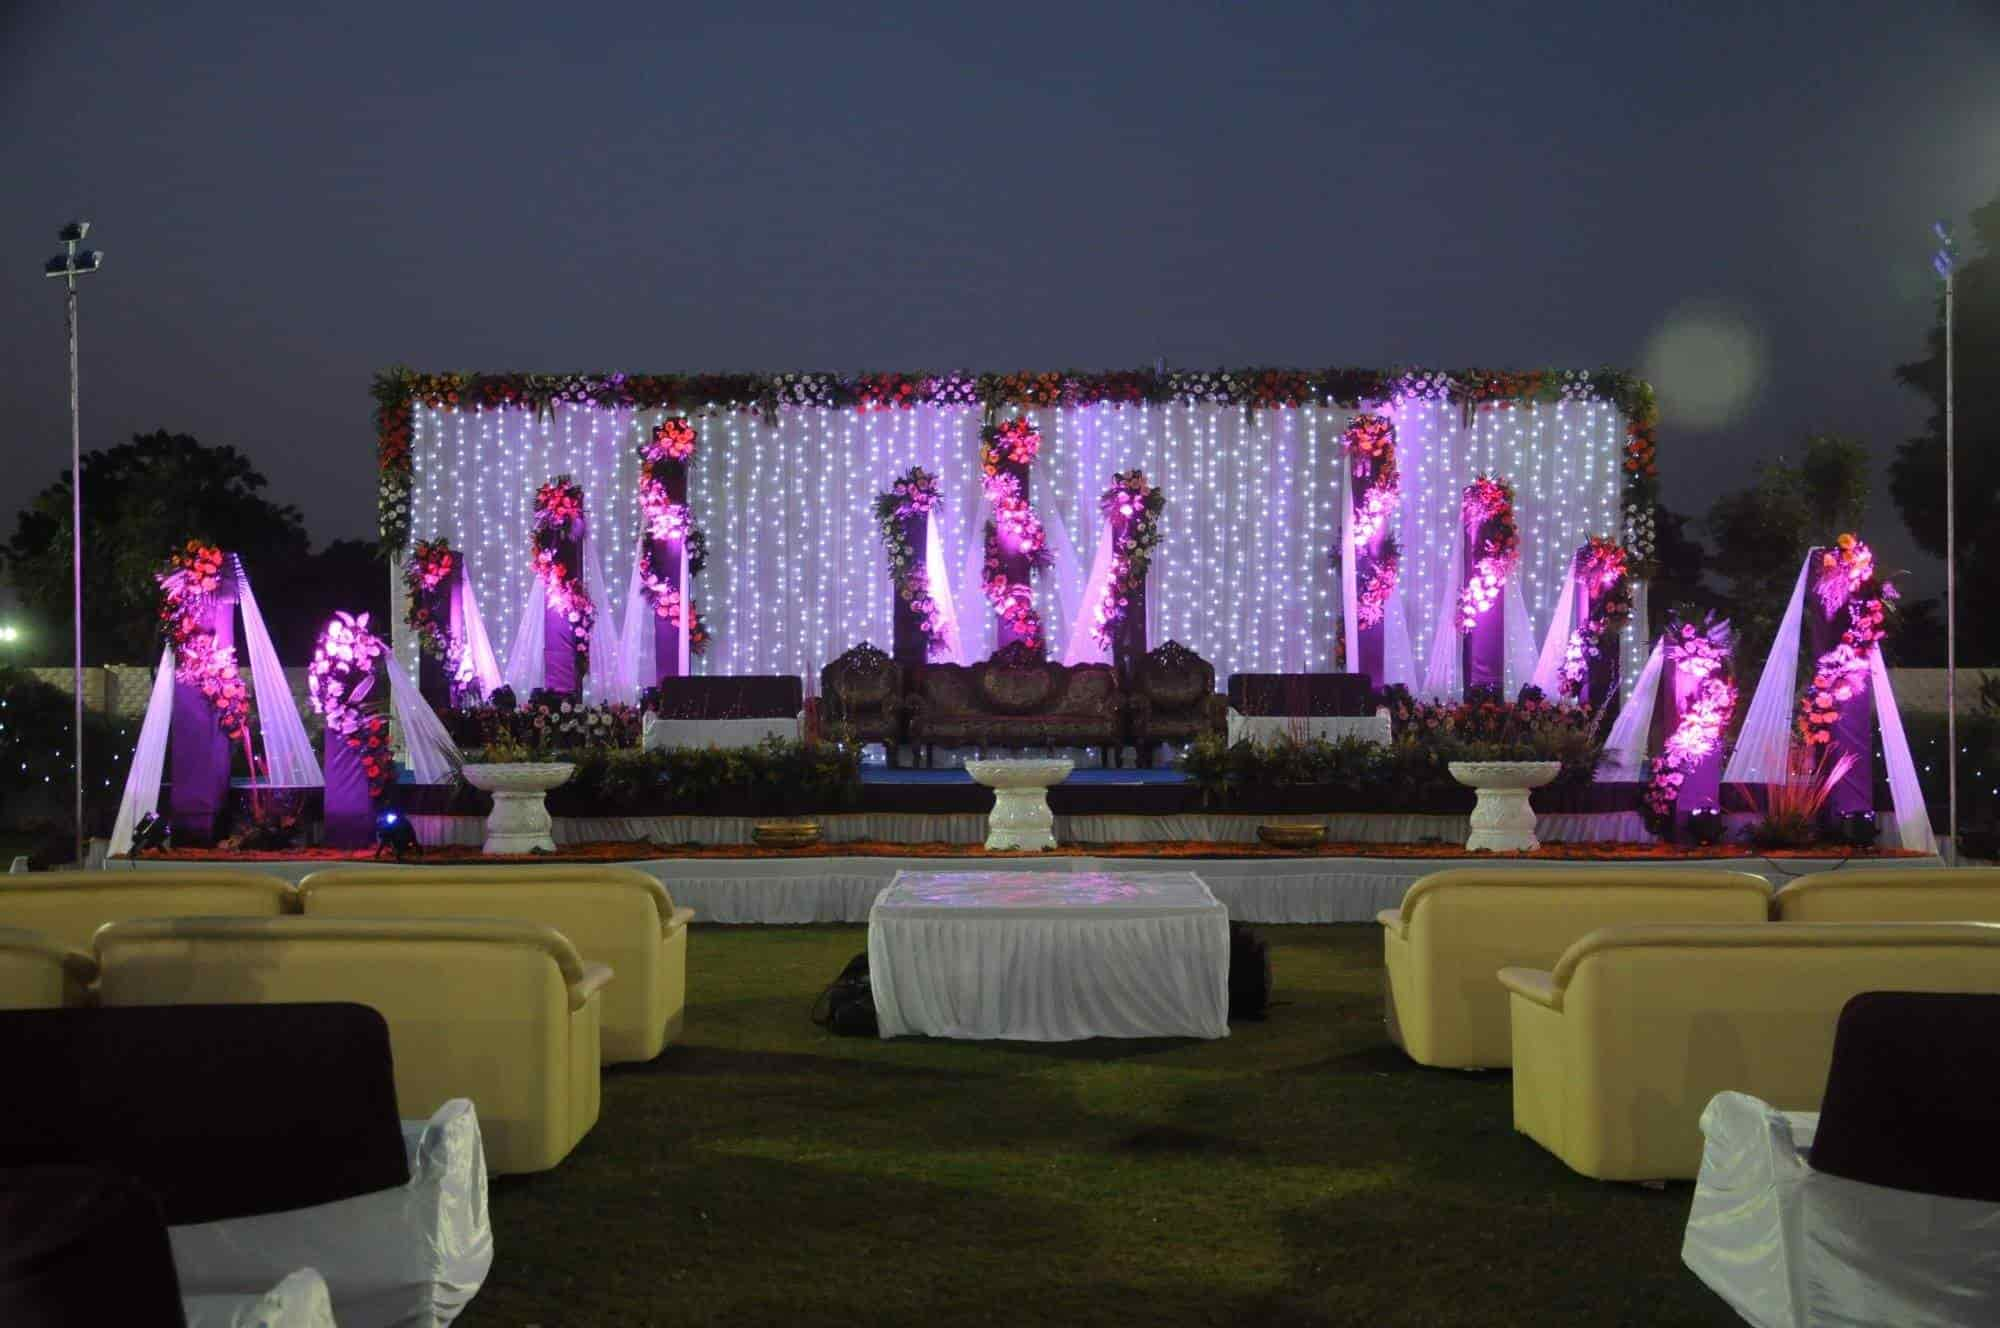 M k farm photos sola road ahmedabad pictures images gallery stage decoration m k farm photos sola road ahmedabad party lawns junglespirit Images